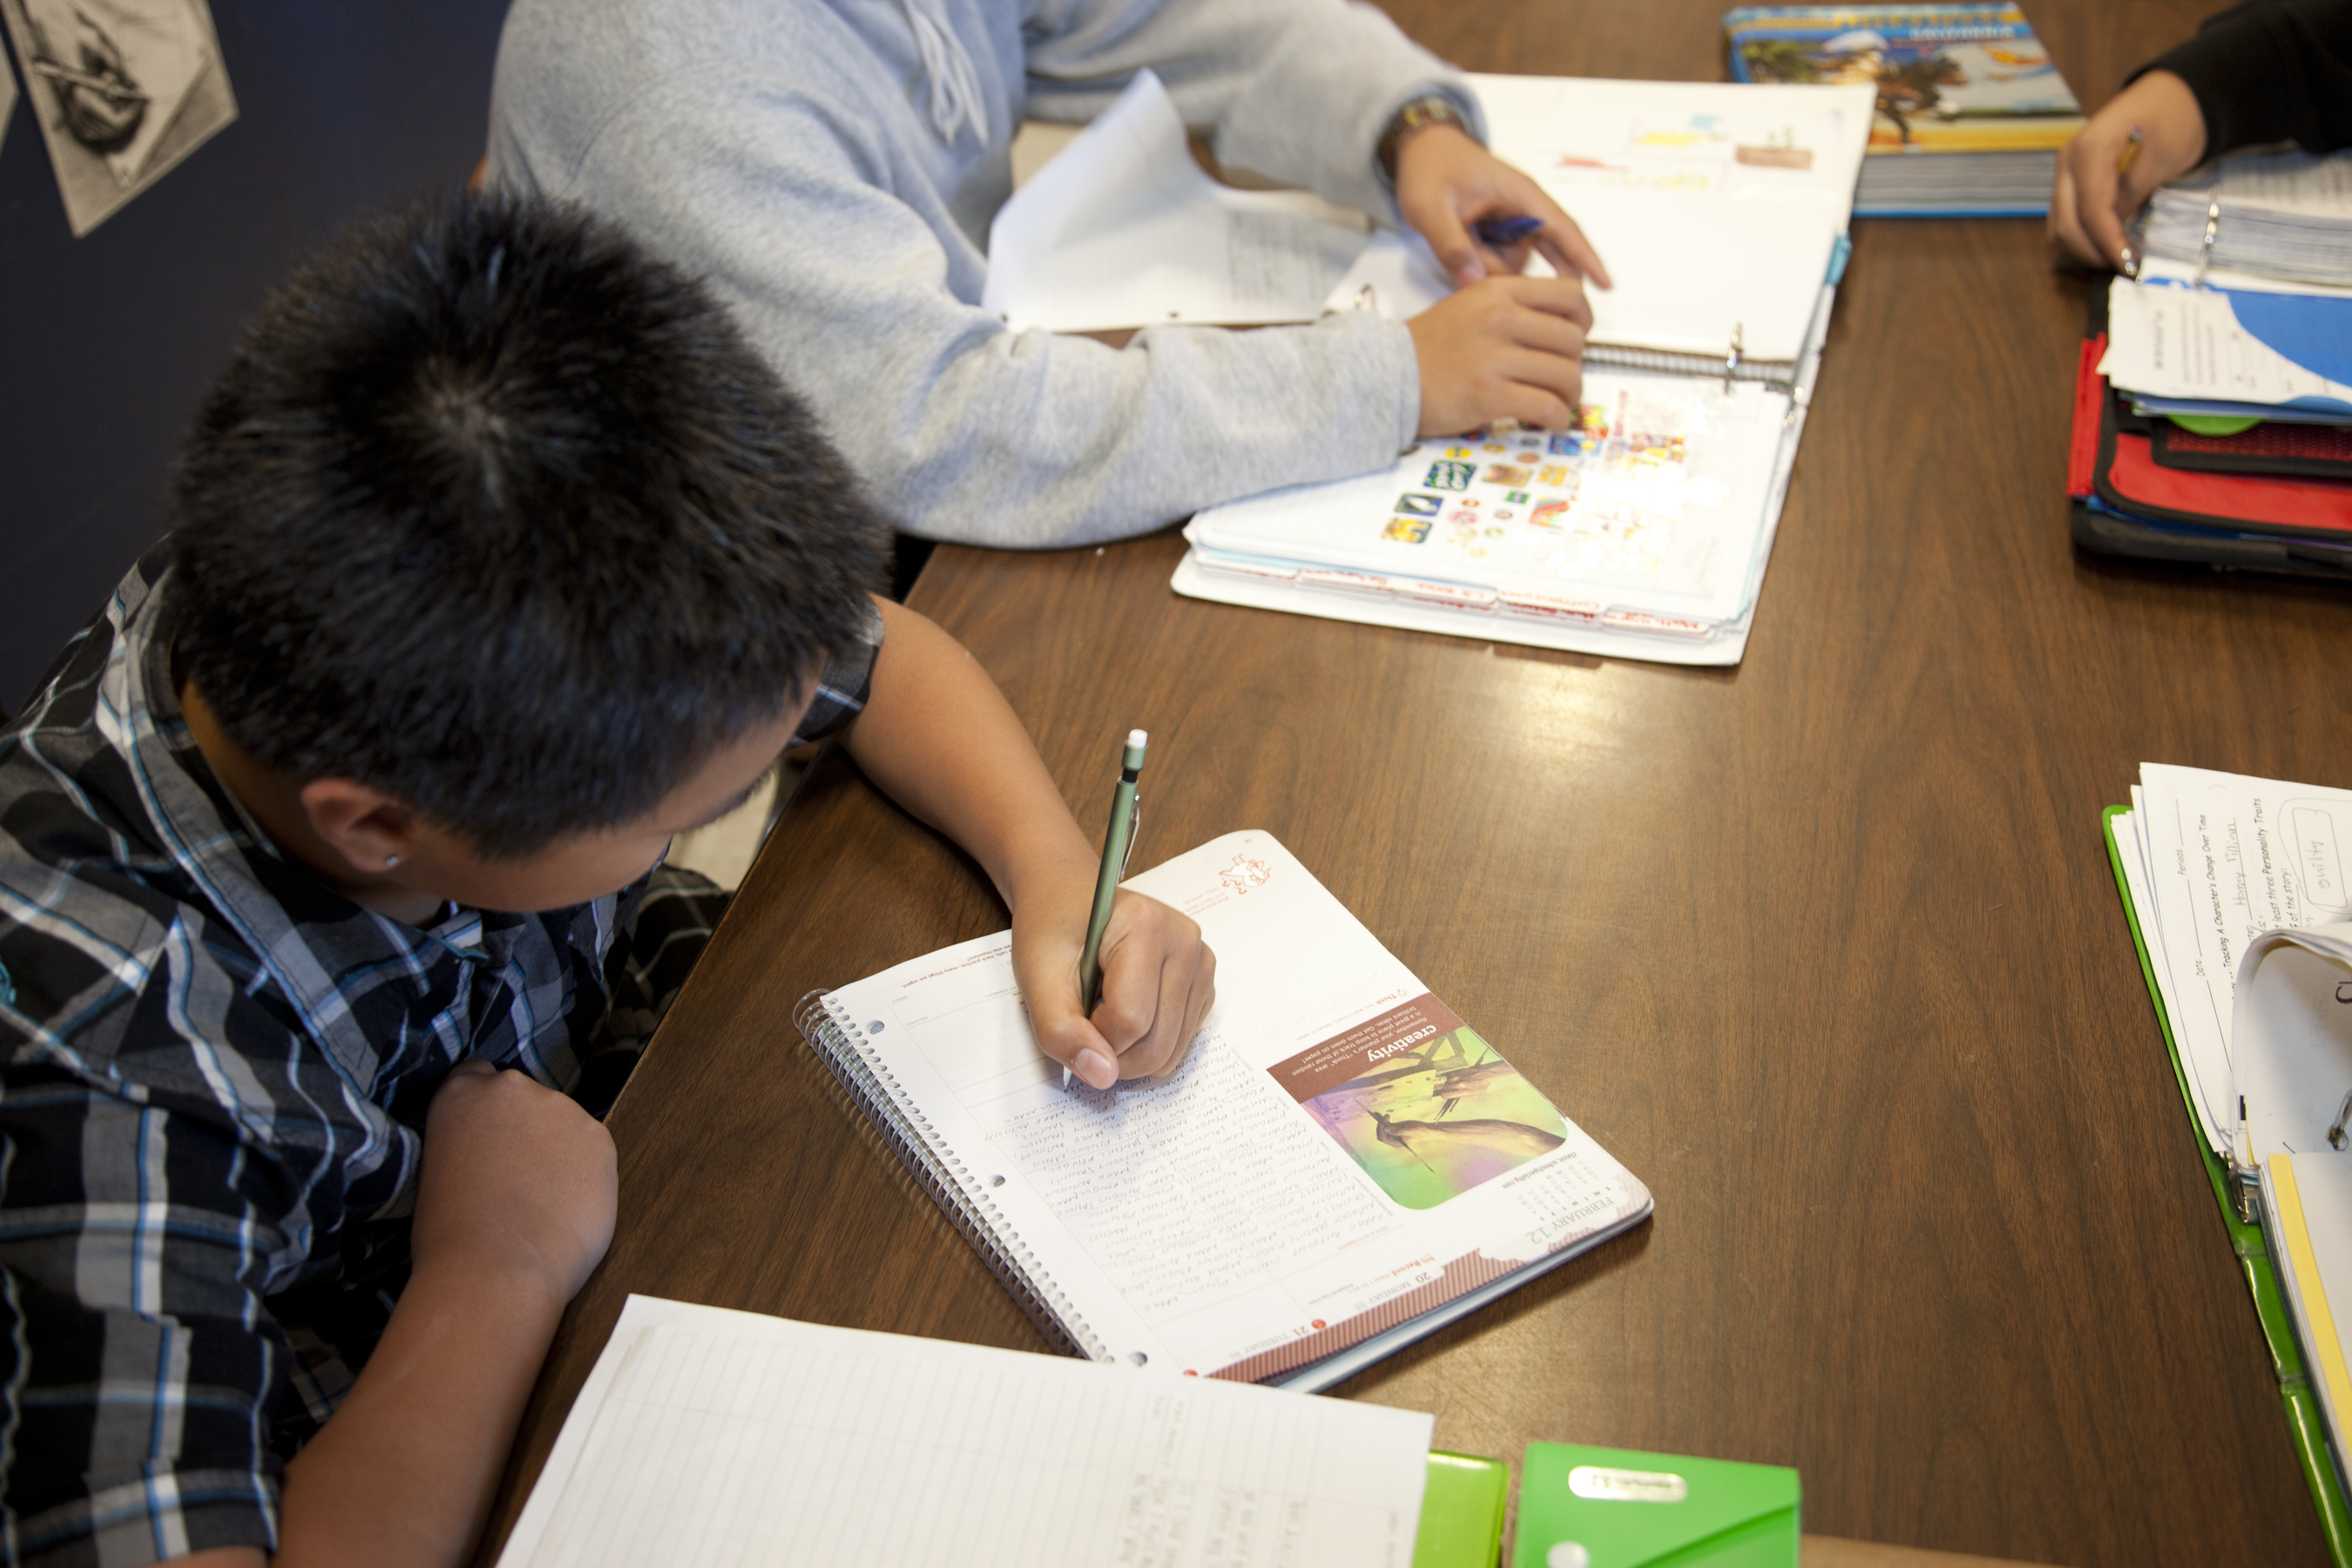 Teaching Middle School is Never Easy, But It Helps to Know How to Help Students Learn